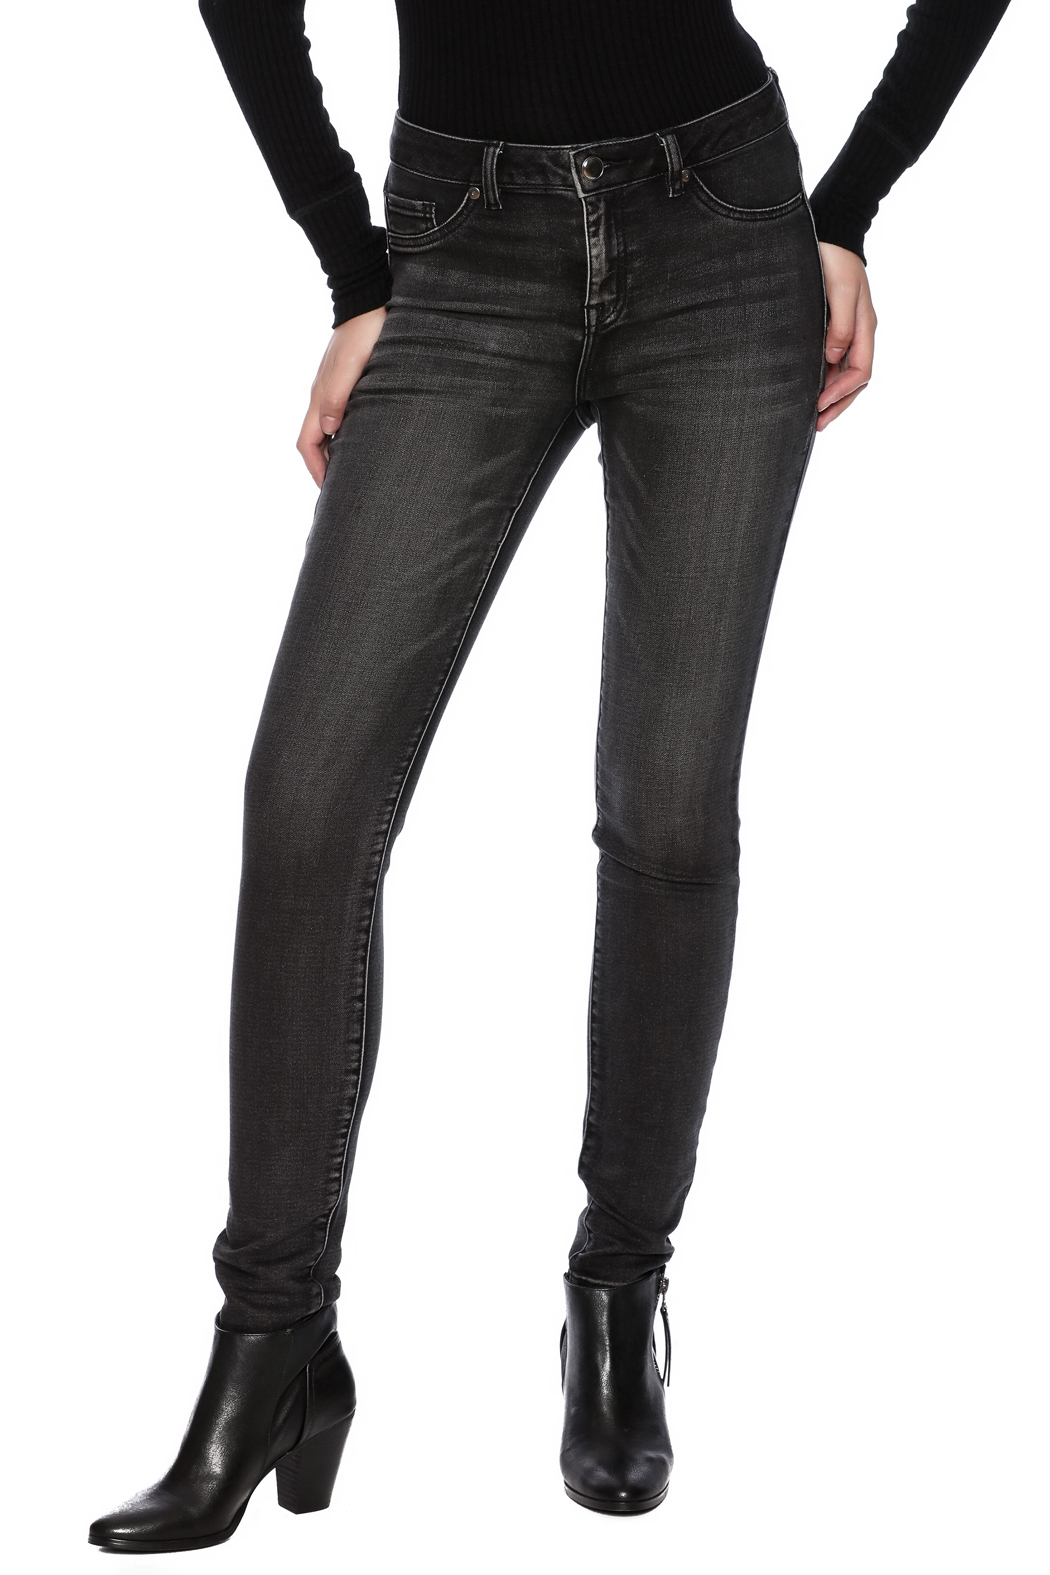 Tribal Jeans Black Distressed Jean - Main Image